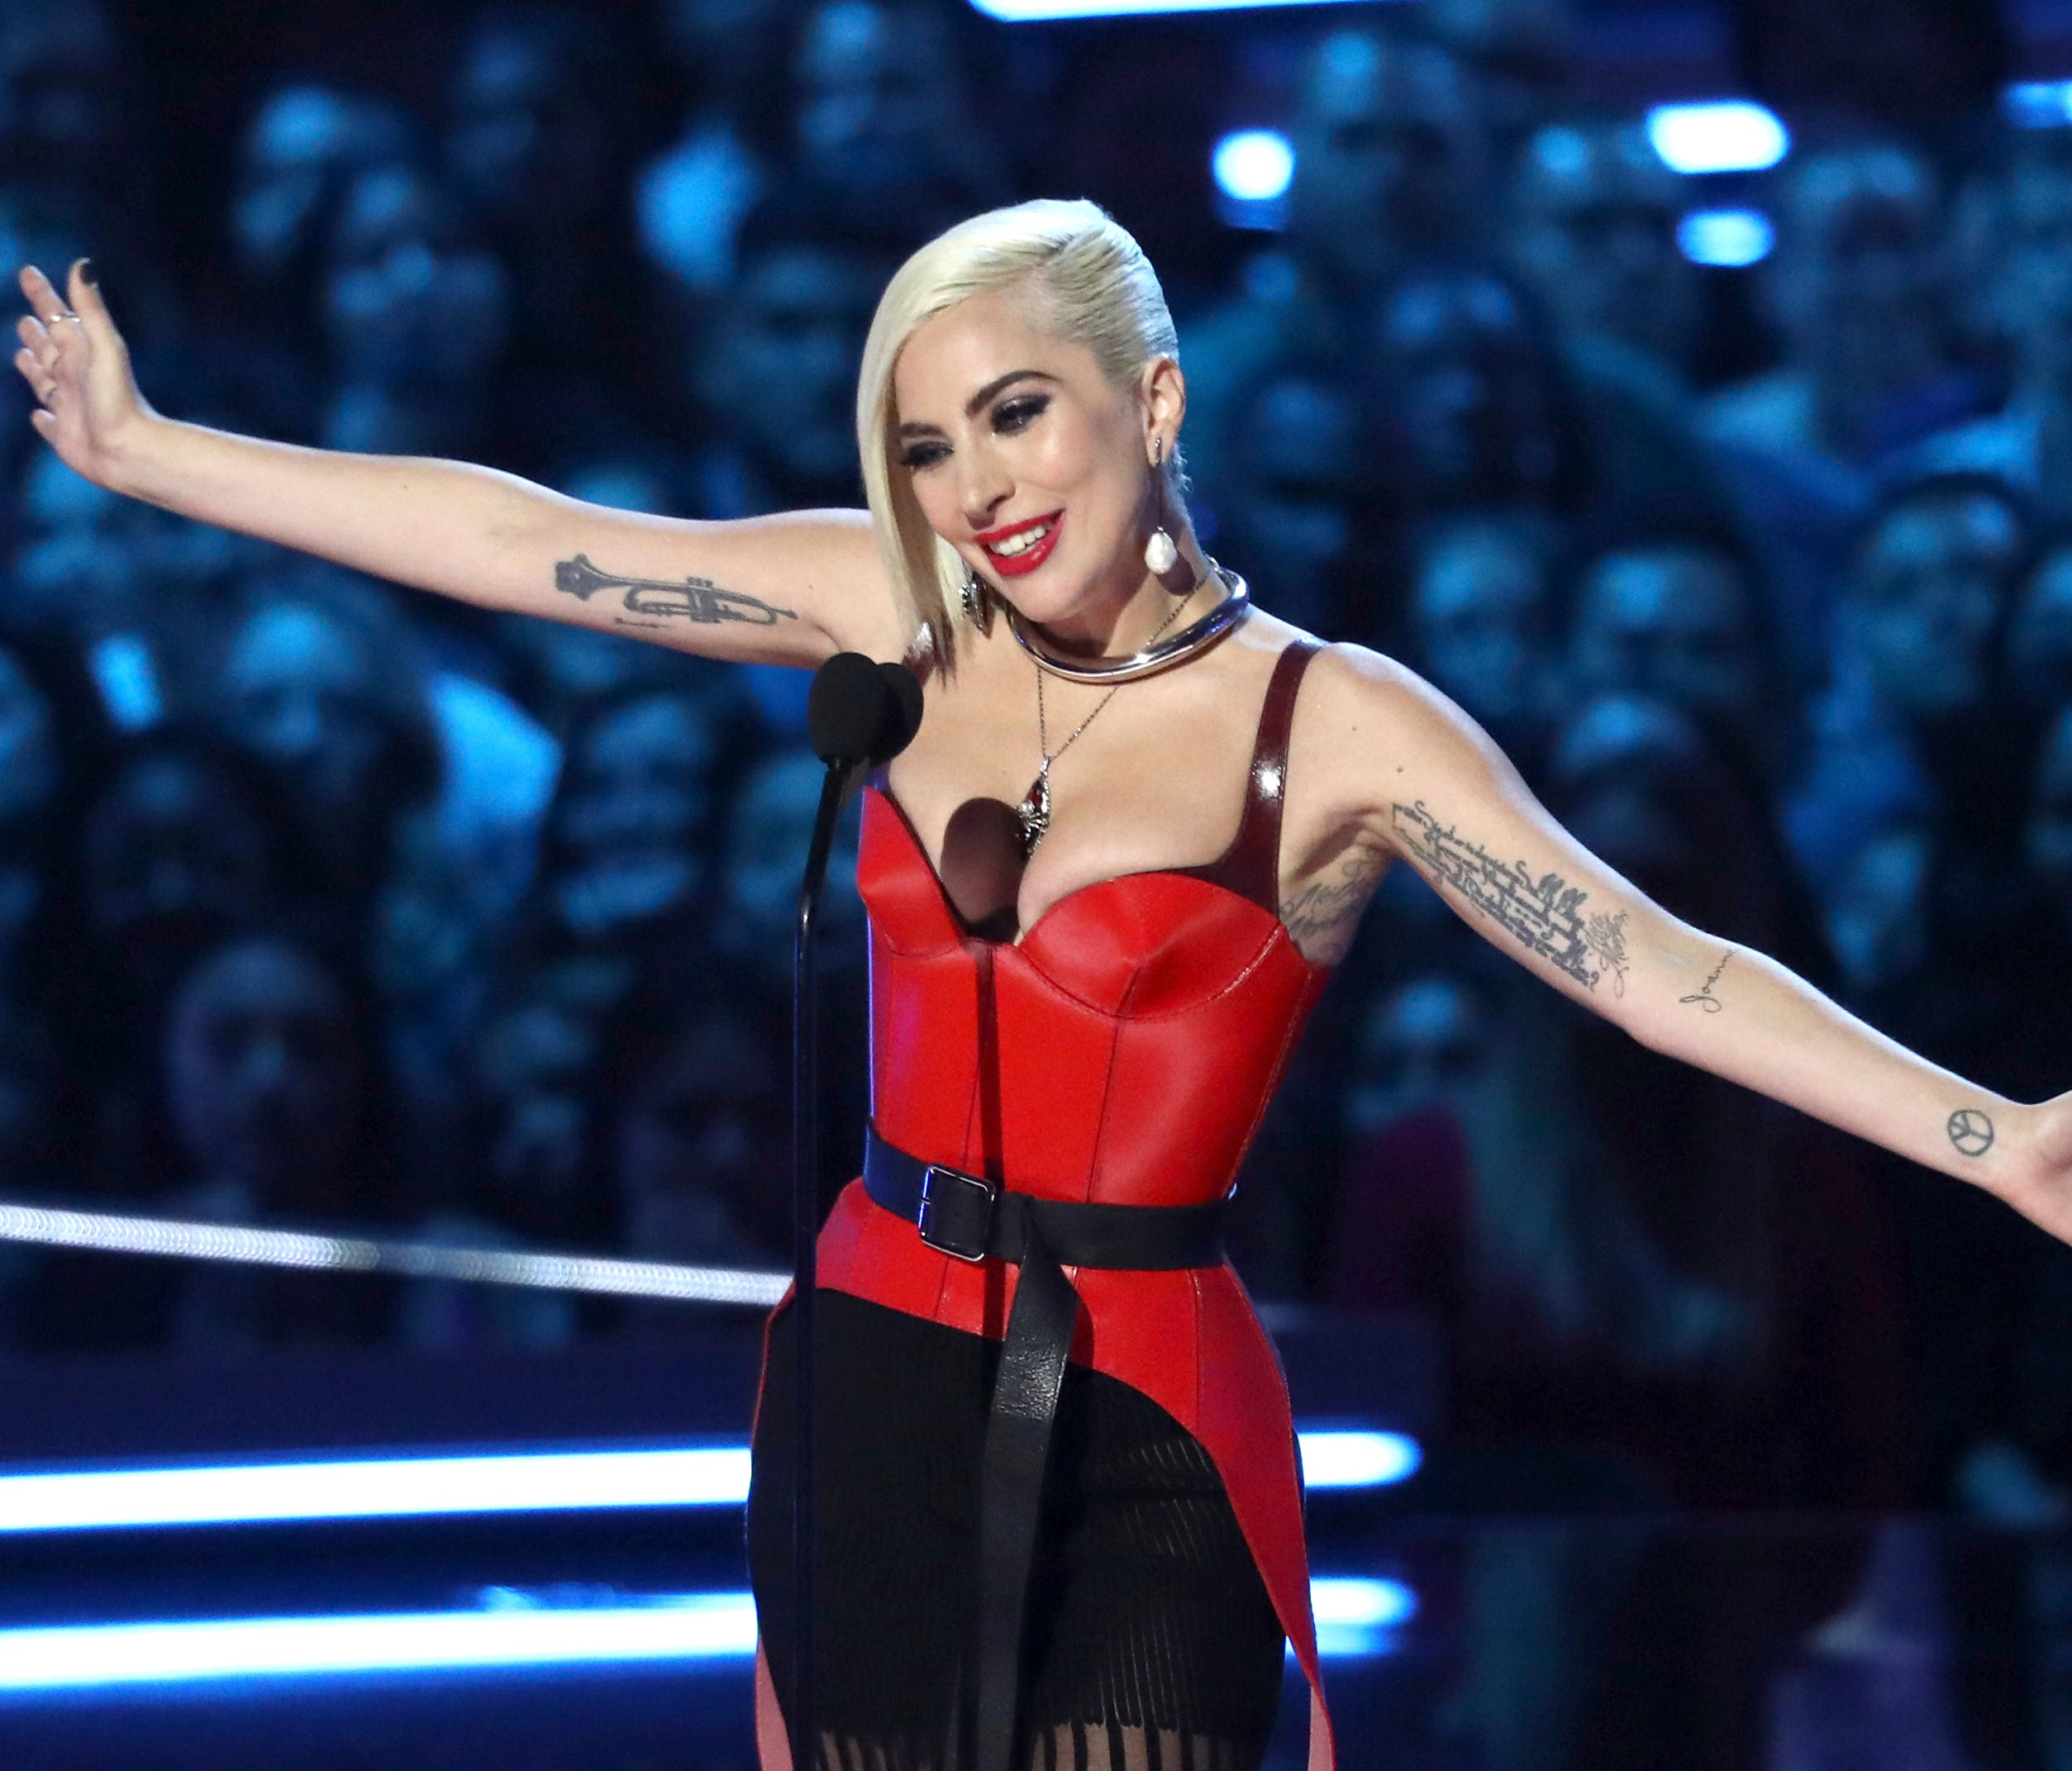 Whoops! Lady Gaga let an F-bomb fly while handing out the biggest award of the night.